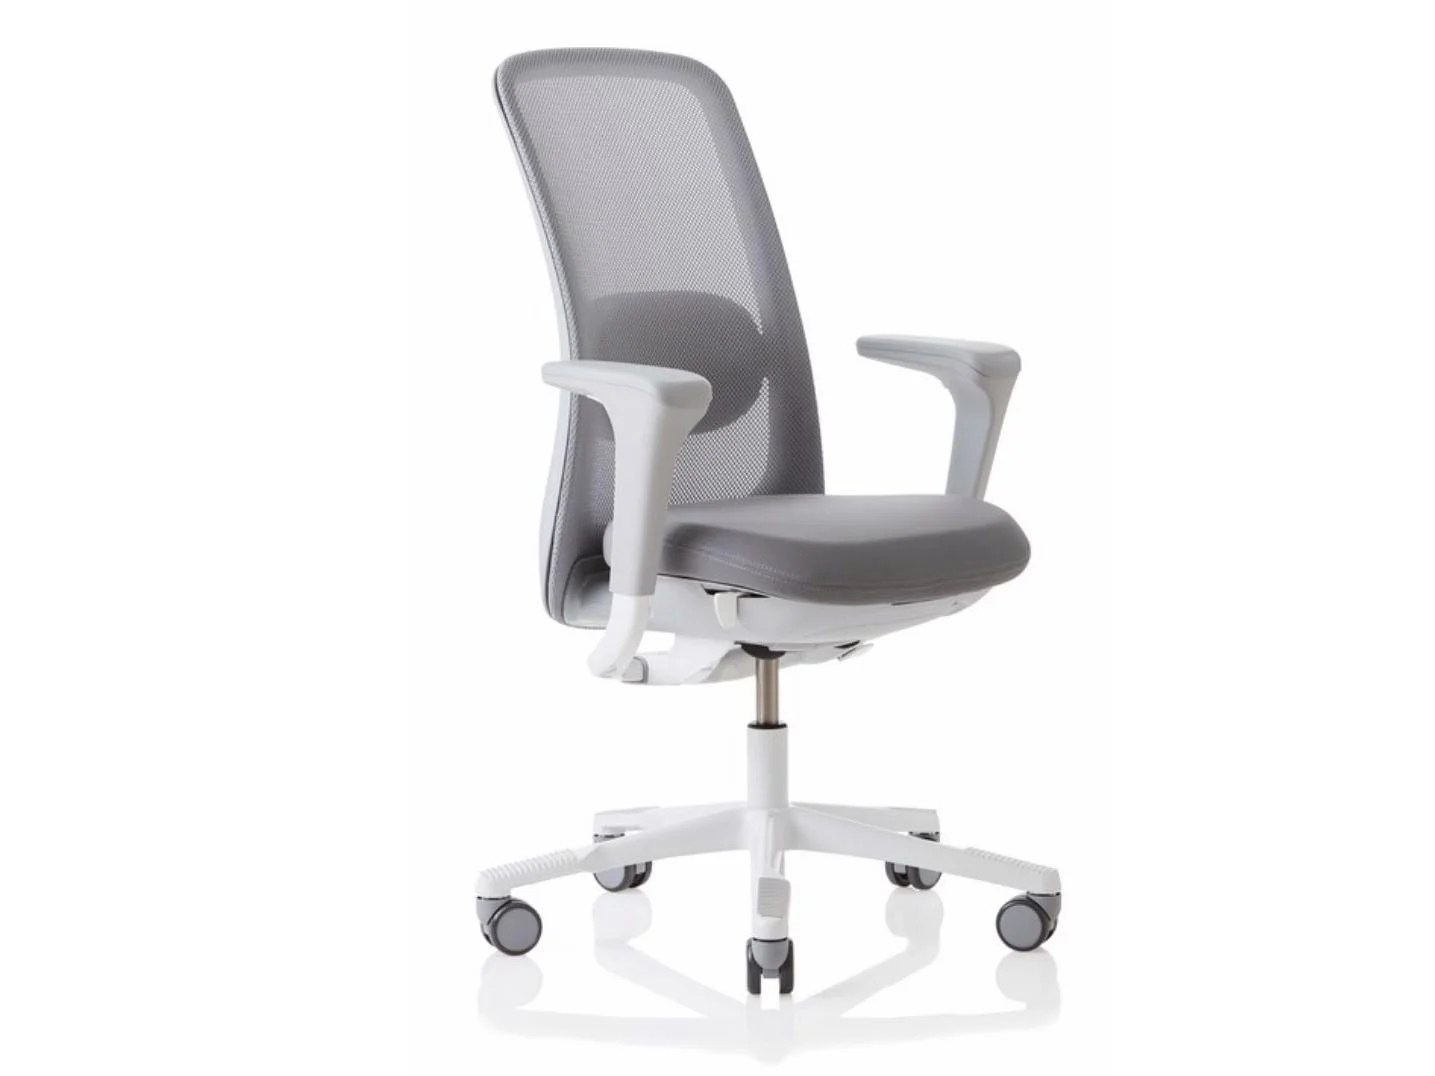 white mesh office chair uk exercise ball base with wheels 8 best ergonomic chairs the independent most desk go up to a seat height of around 520 560mm depending on gas stem mechanism used this one goes right 640mm which is excellent